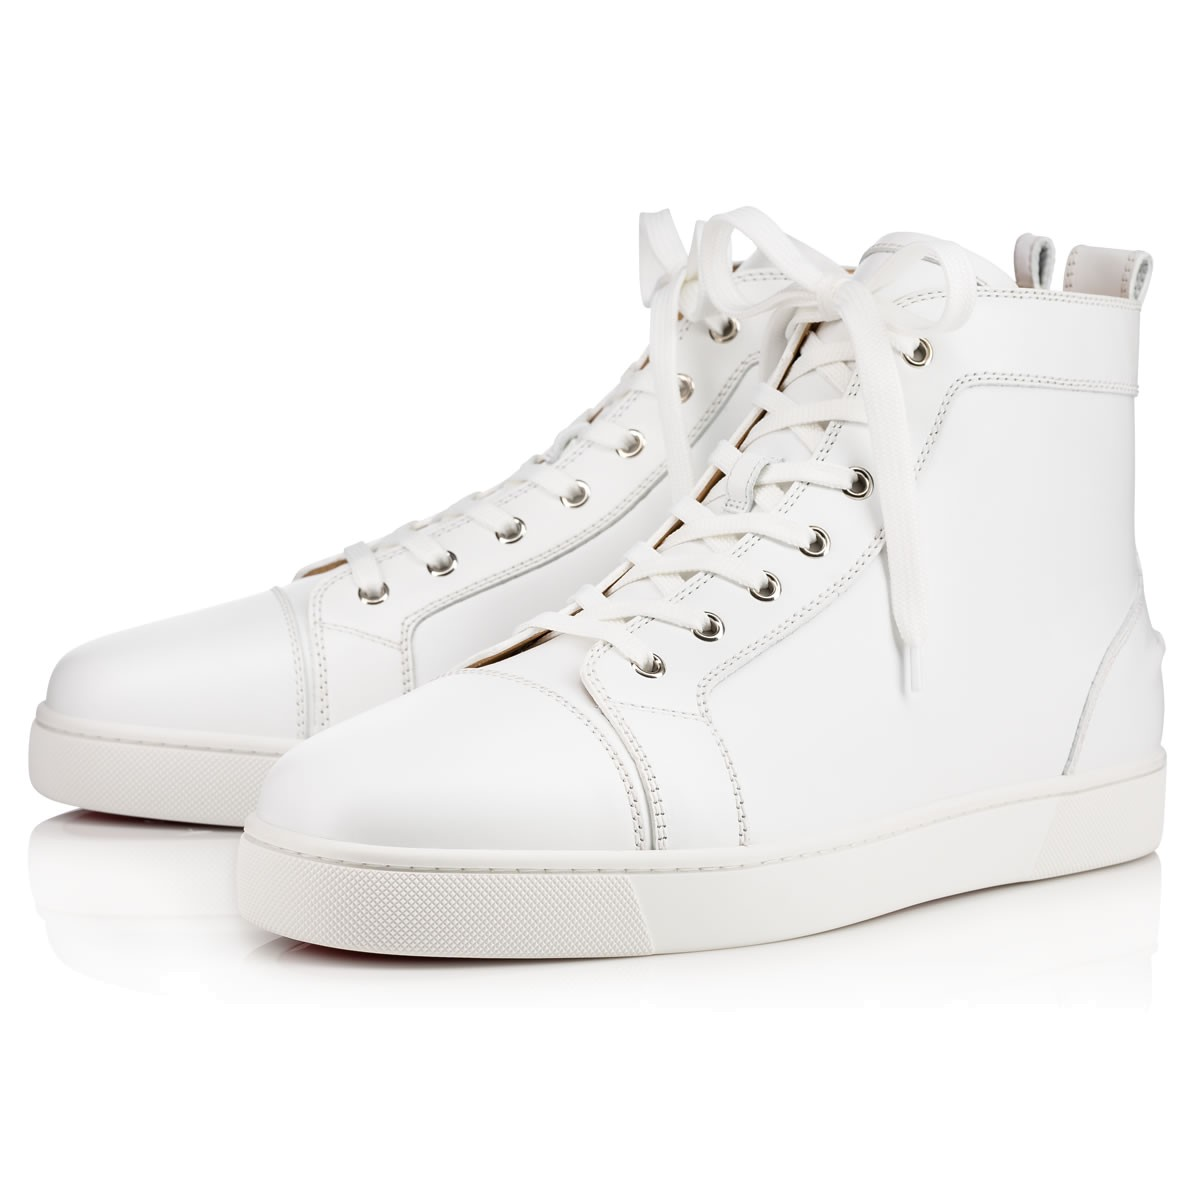 new concept 6e66a a3a60 Christian Louboutin White Mens Sneakers